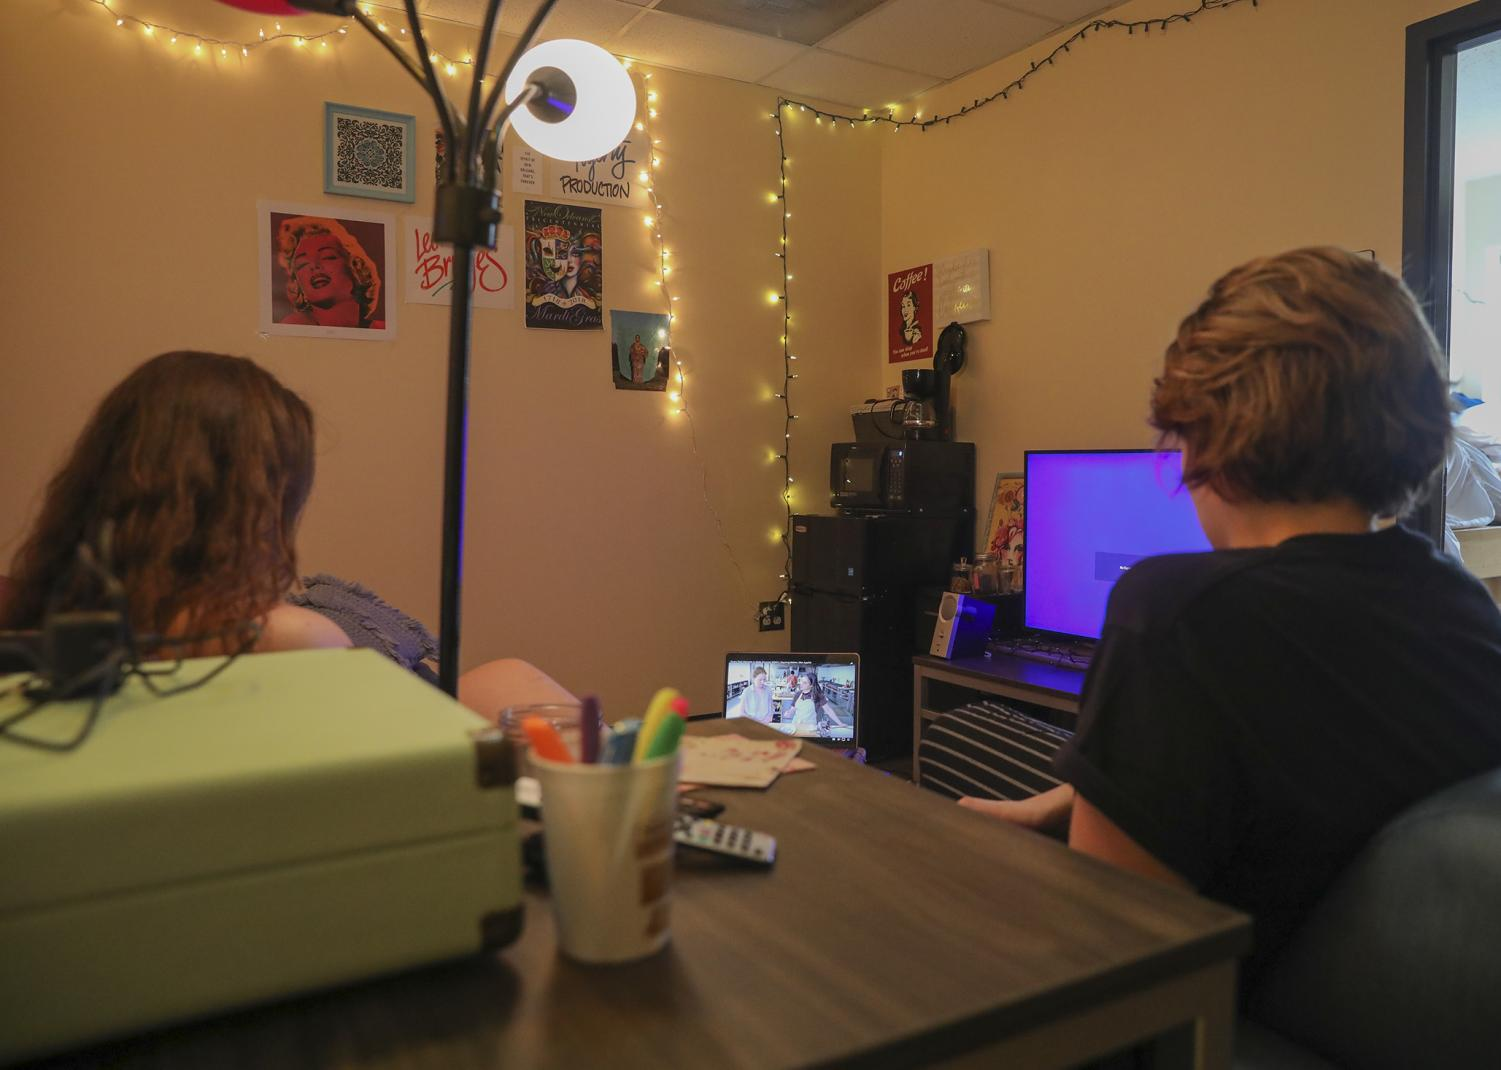 Juniors Grace Hawkins and Allie Waguespack watch cable on a laptop in their dorm room on Sept. 11, 2019.